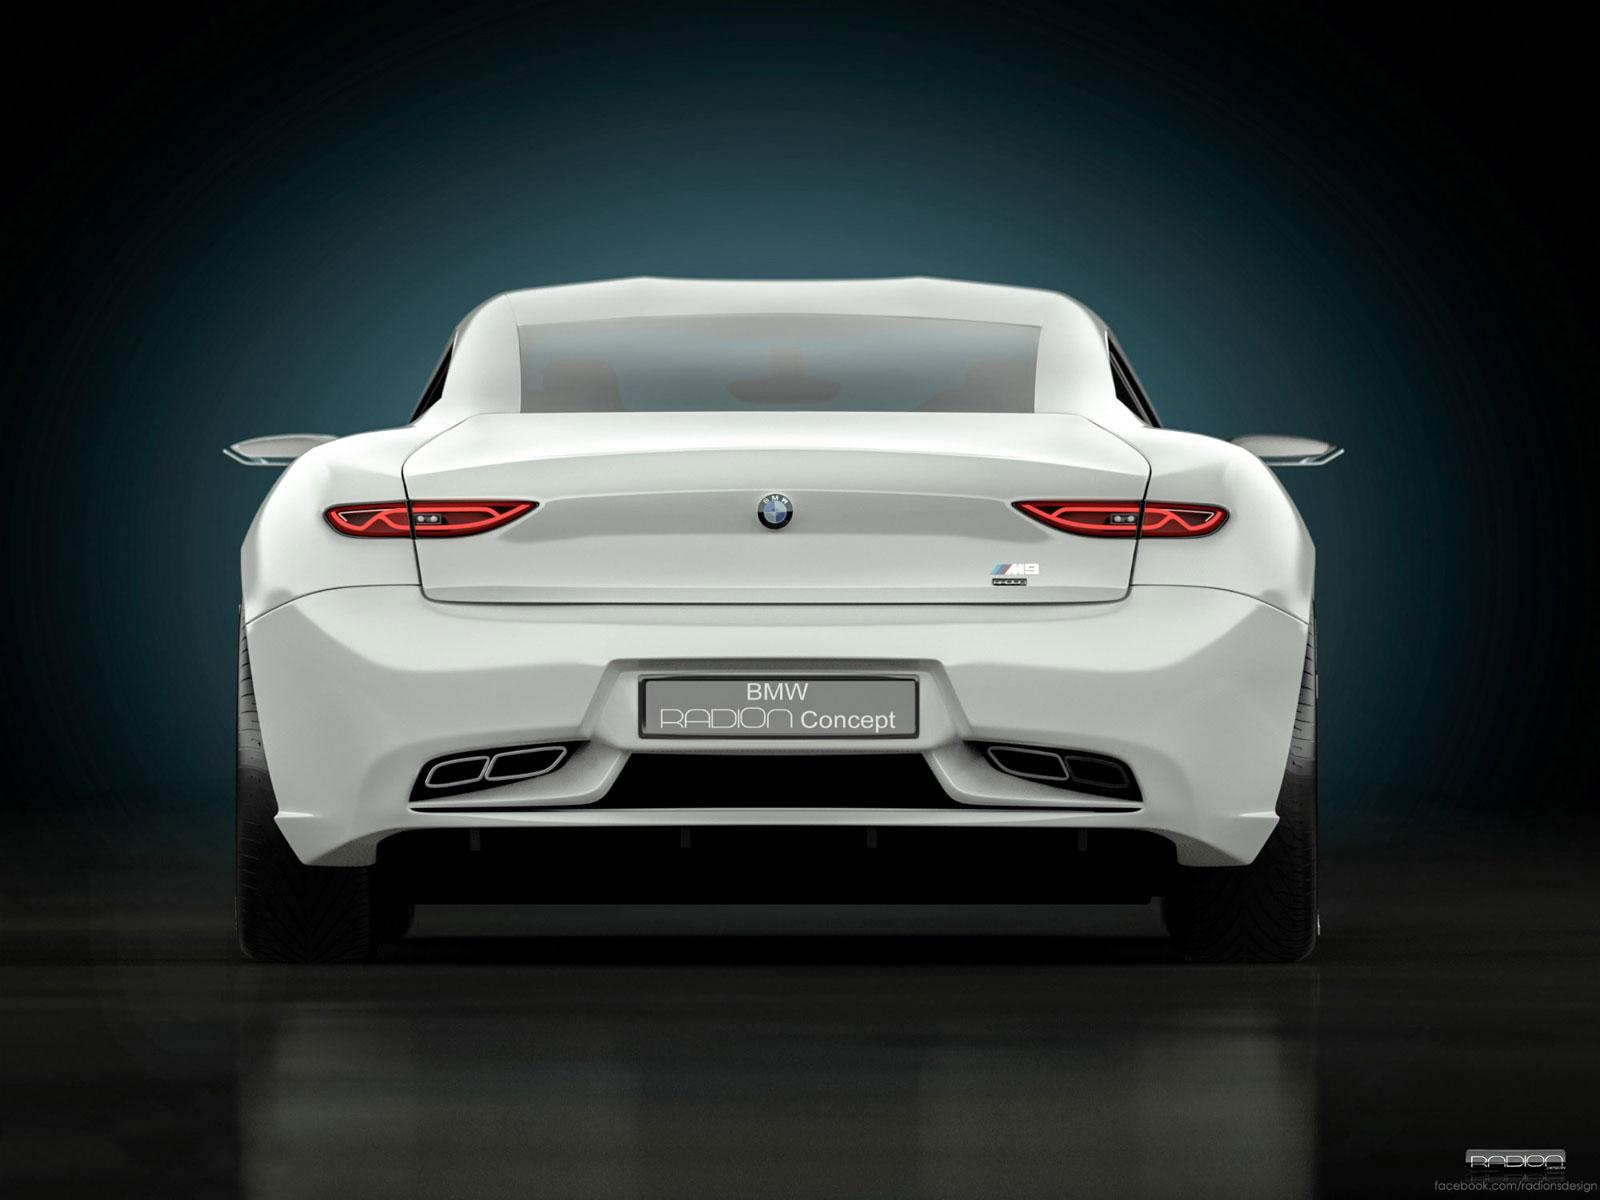 BMW M9 Concept - Car Body Design #219069 on Wookmark